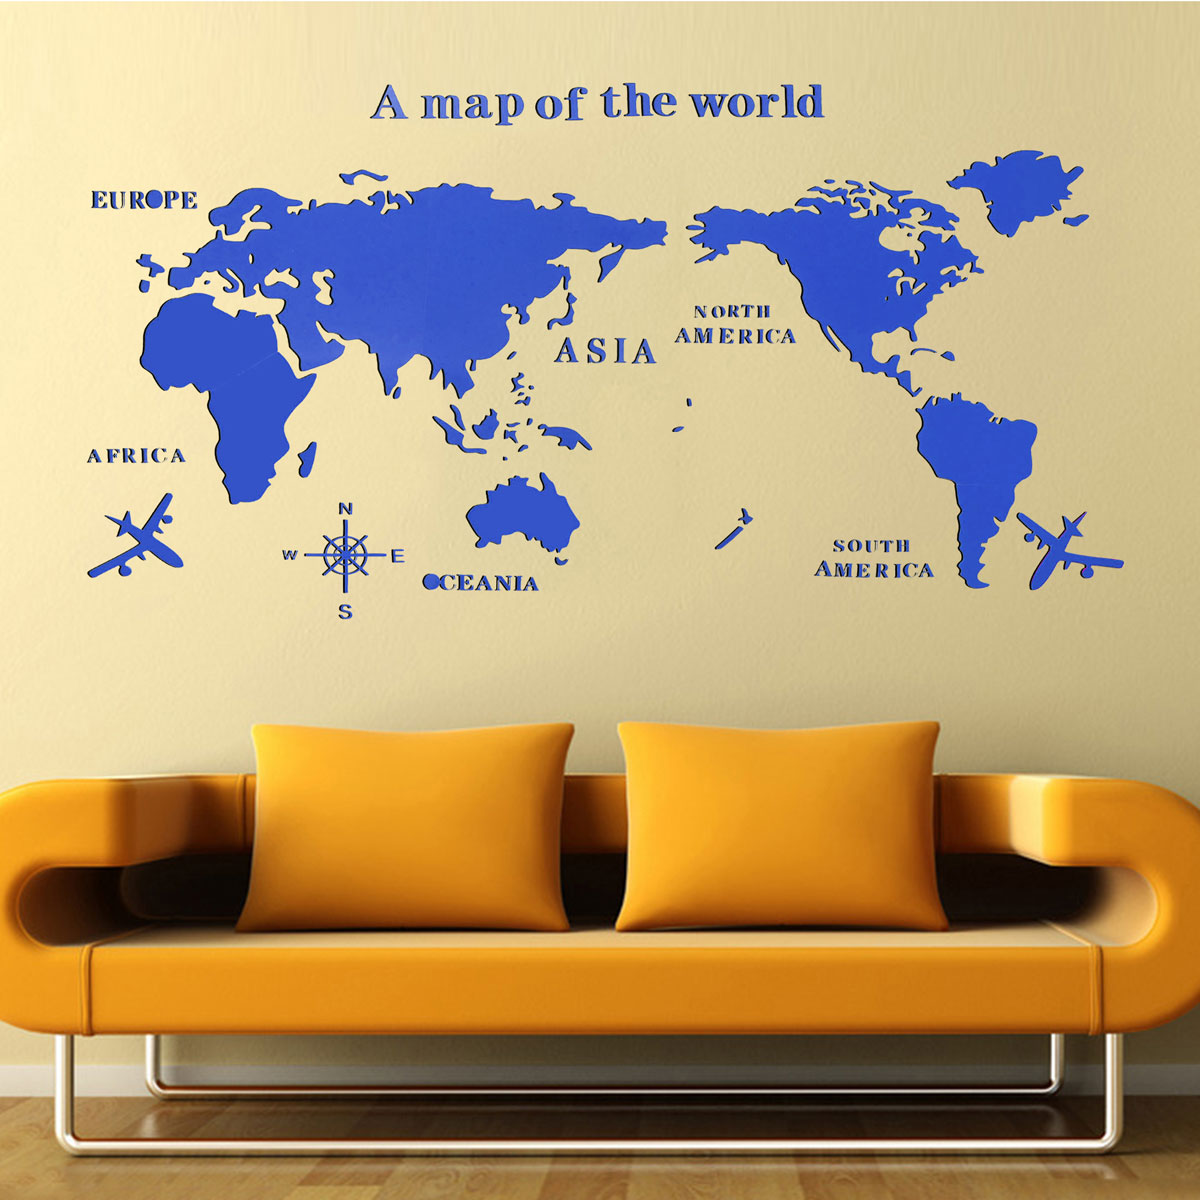 Funky Wall Decor Map Of The World Inspiration - Art & Wall Decor ...